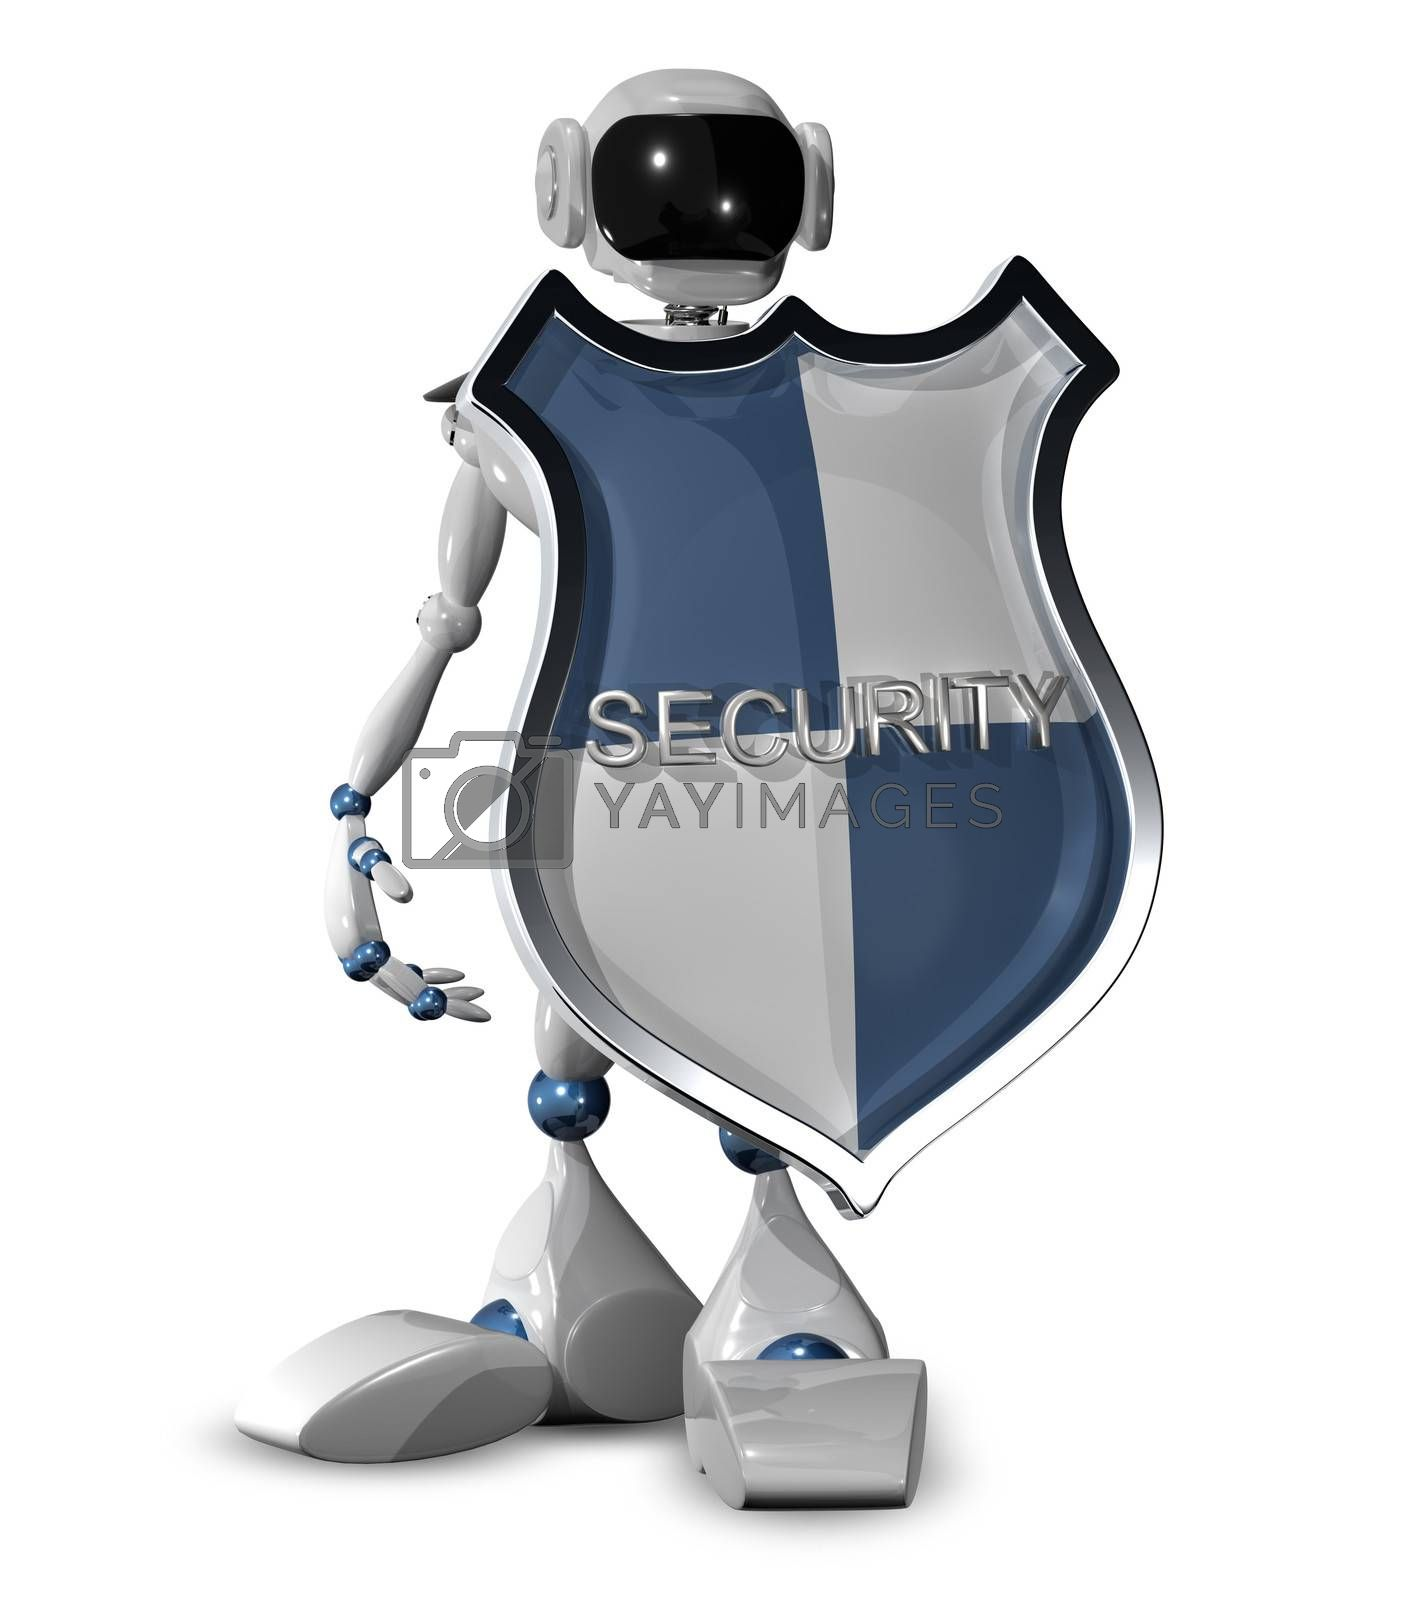 3d illustration of a robot with a shield